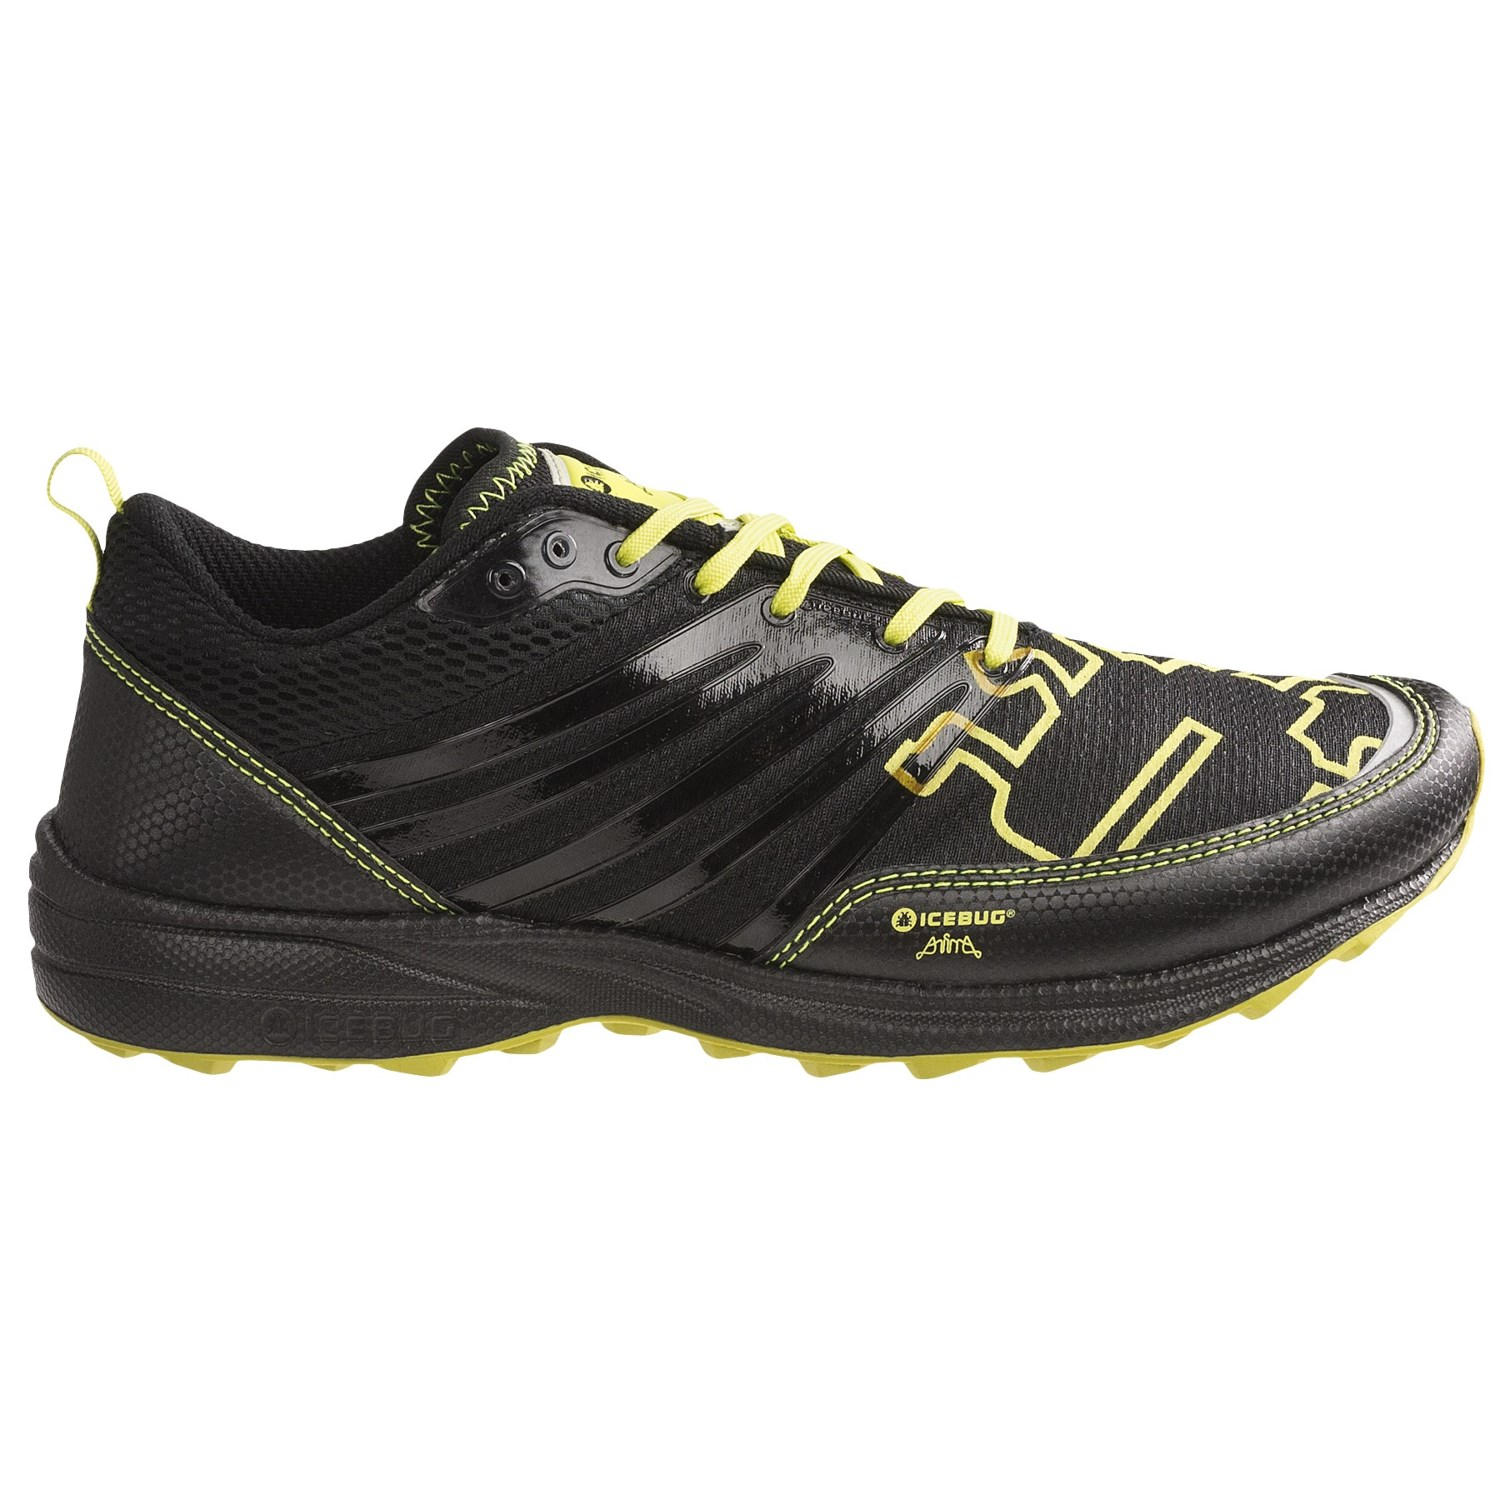 Minimalist Running Shoes Clearance